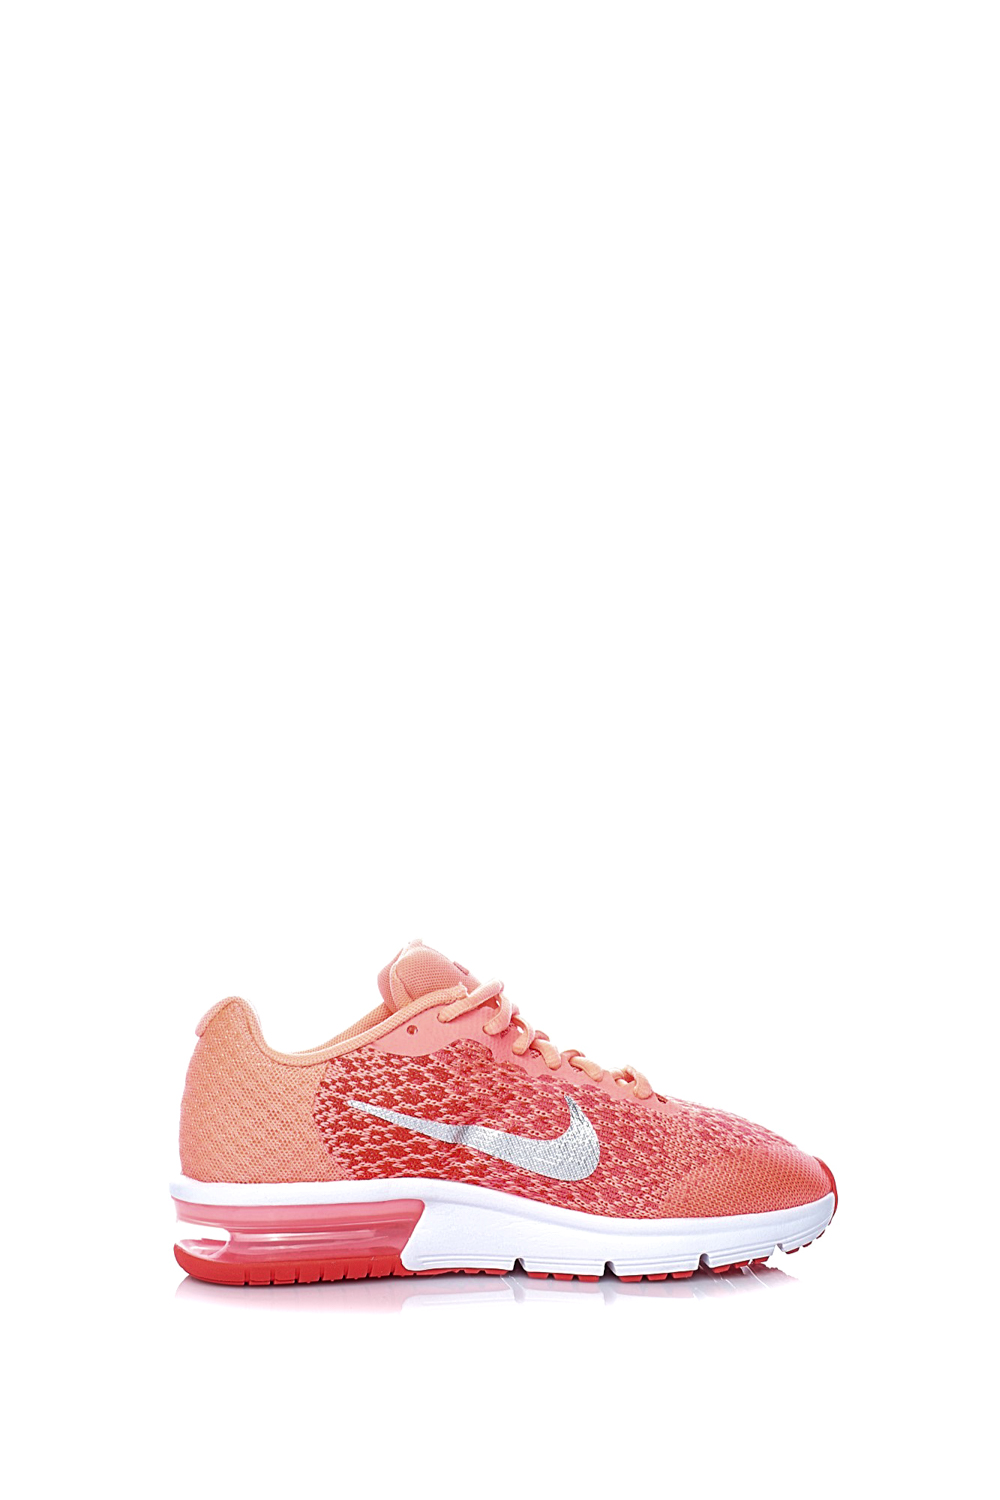 60ea9569518 ... NIKE - Παιδικά αθλητικά παπούτσια Nike AIR MAX SEQUENT 2 (GS) πορτοκαλί